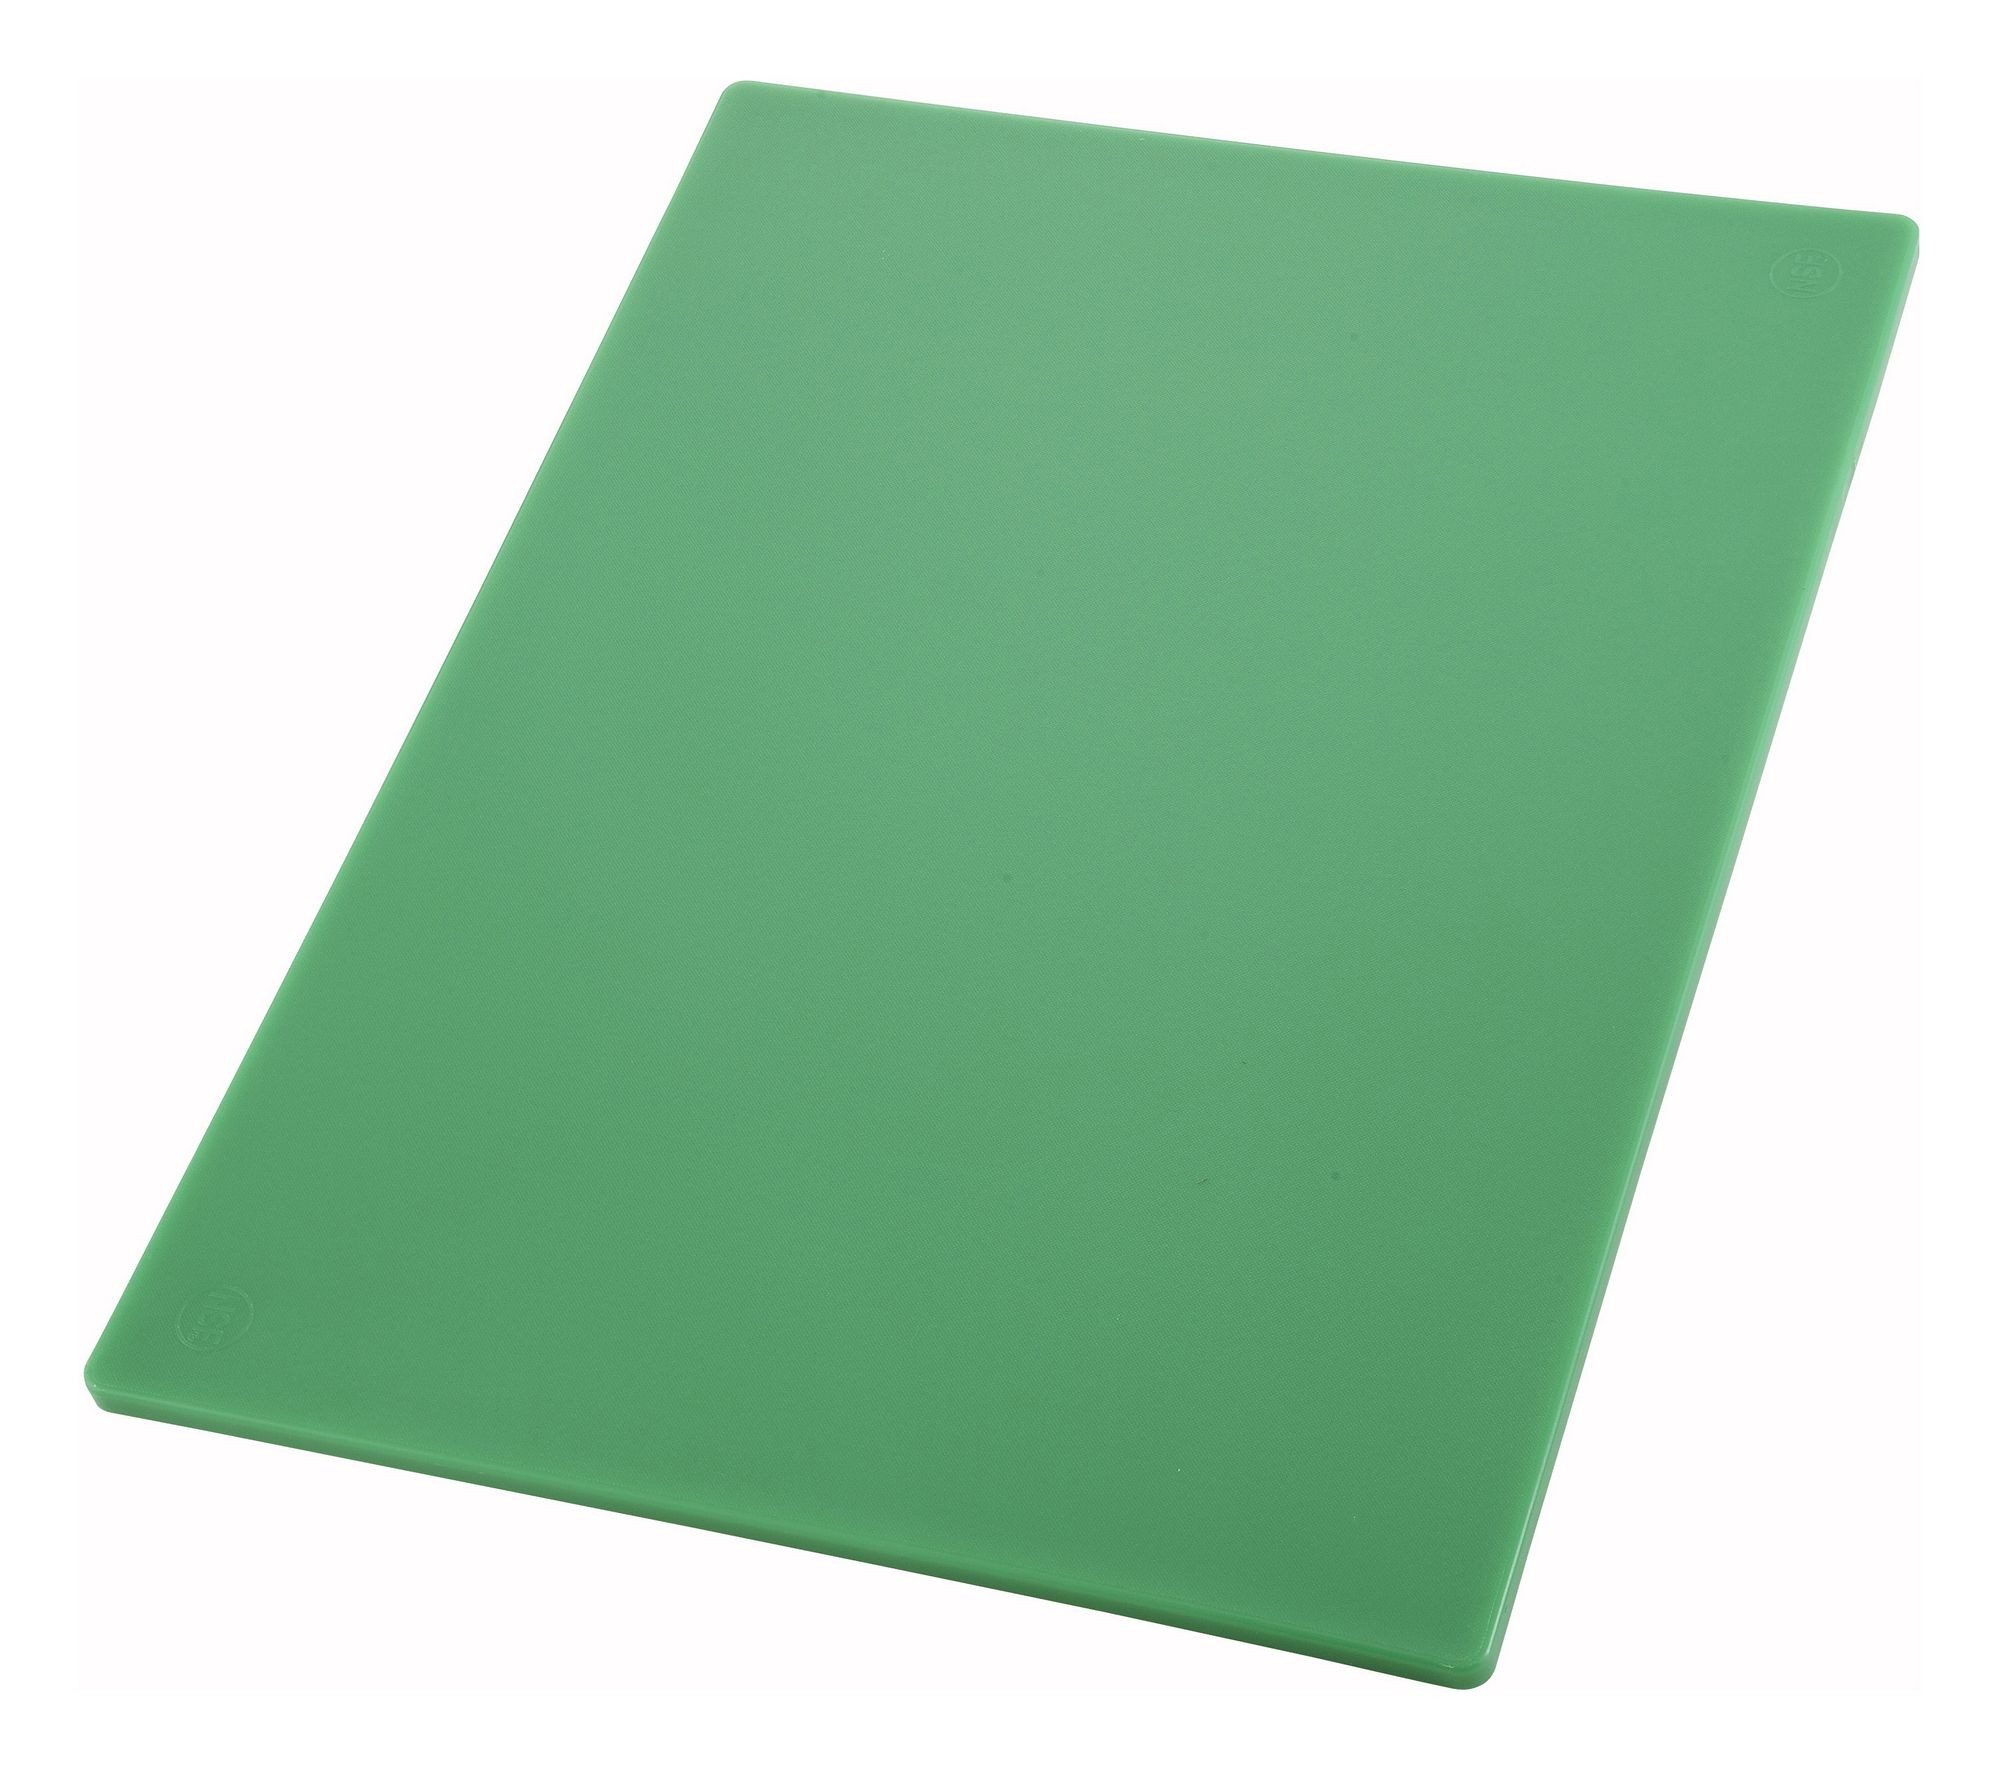 "Winco CBGR-1218 Green Plastic Cutting Board 12"" x 18"" x 1/2"""